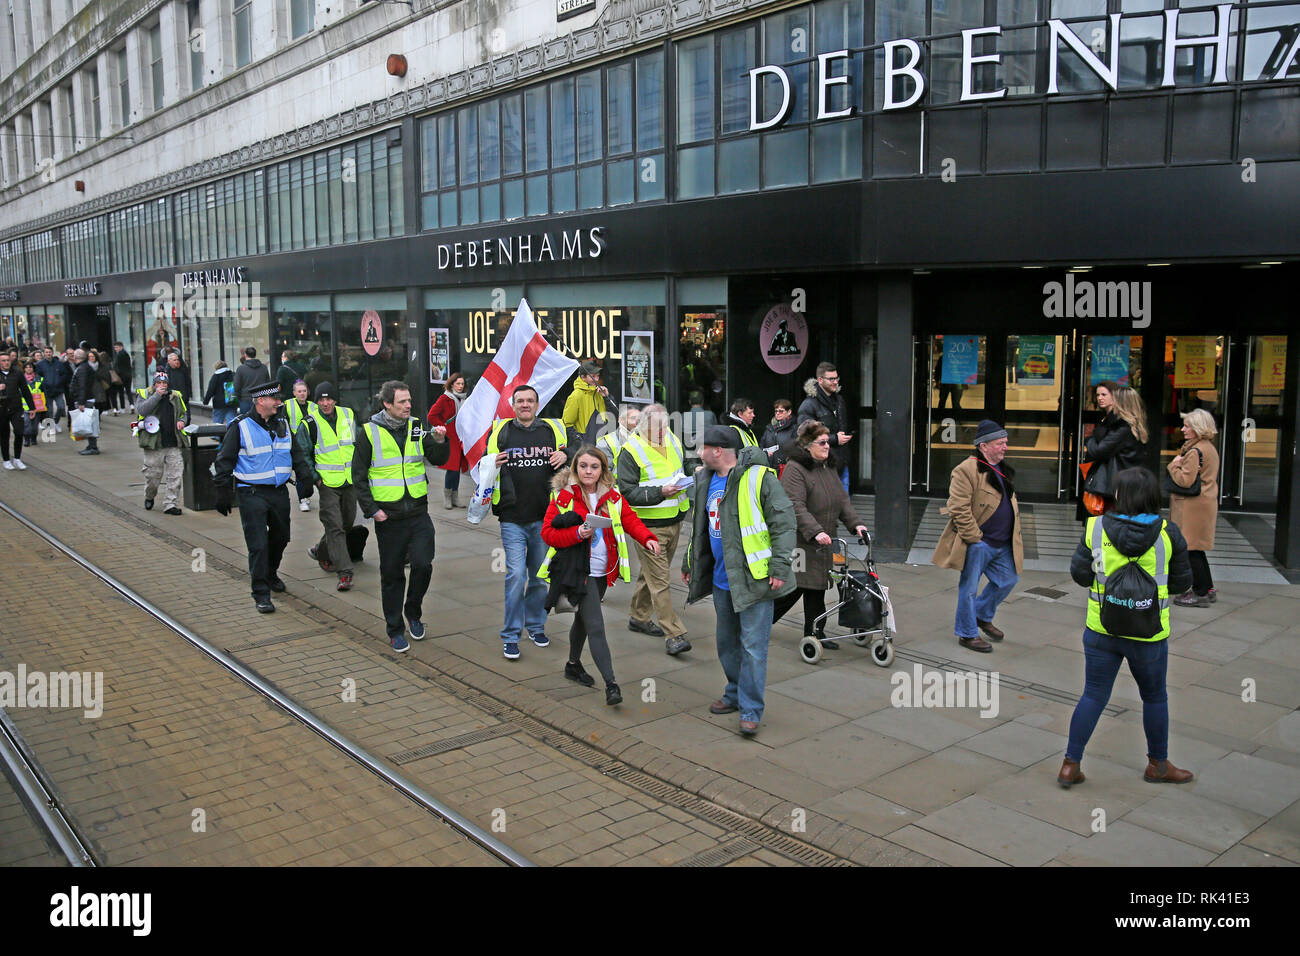 Manchester, UK. 09th February, 2019. Around 20 yellow Vest protesters led by James Goddard march towards an anti racist rally been held in Piccadilly Gardens, Manchester, UK, 9th February 2019 (C)Barbara Cook/Alamy Live News Credit: Barbara Cook/Alamy Live News - Stock Image